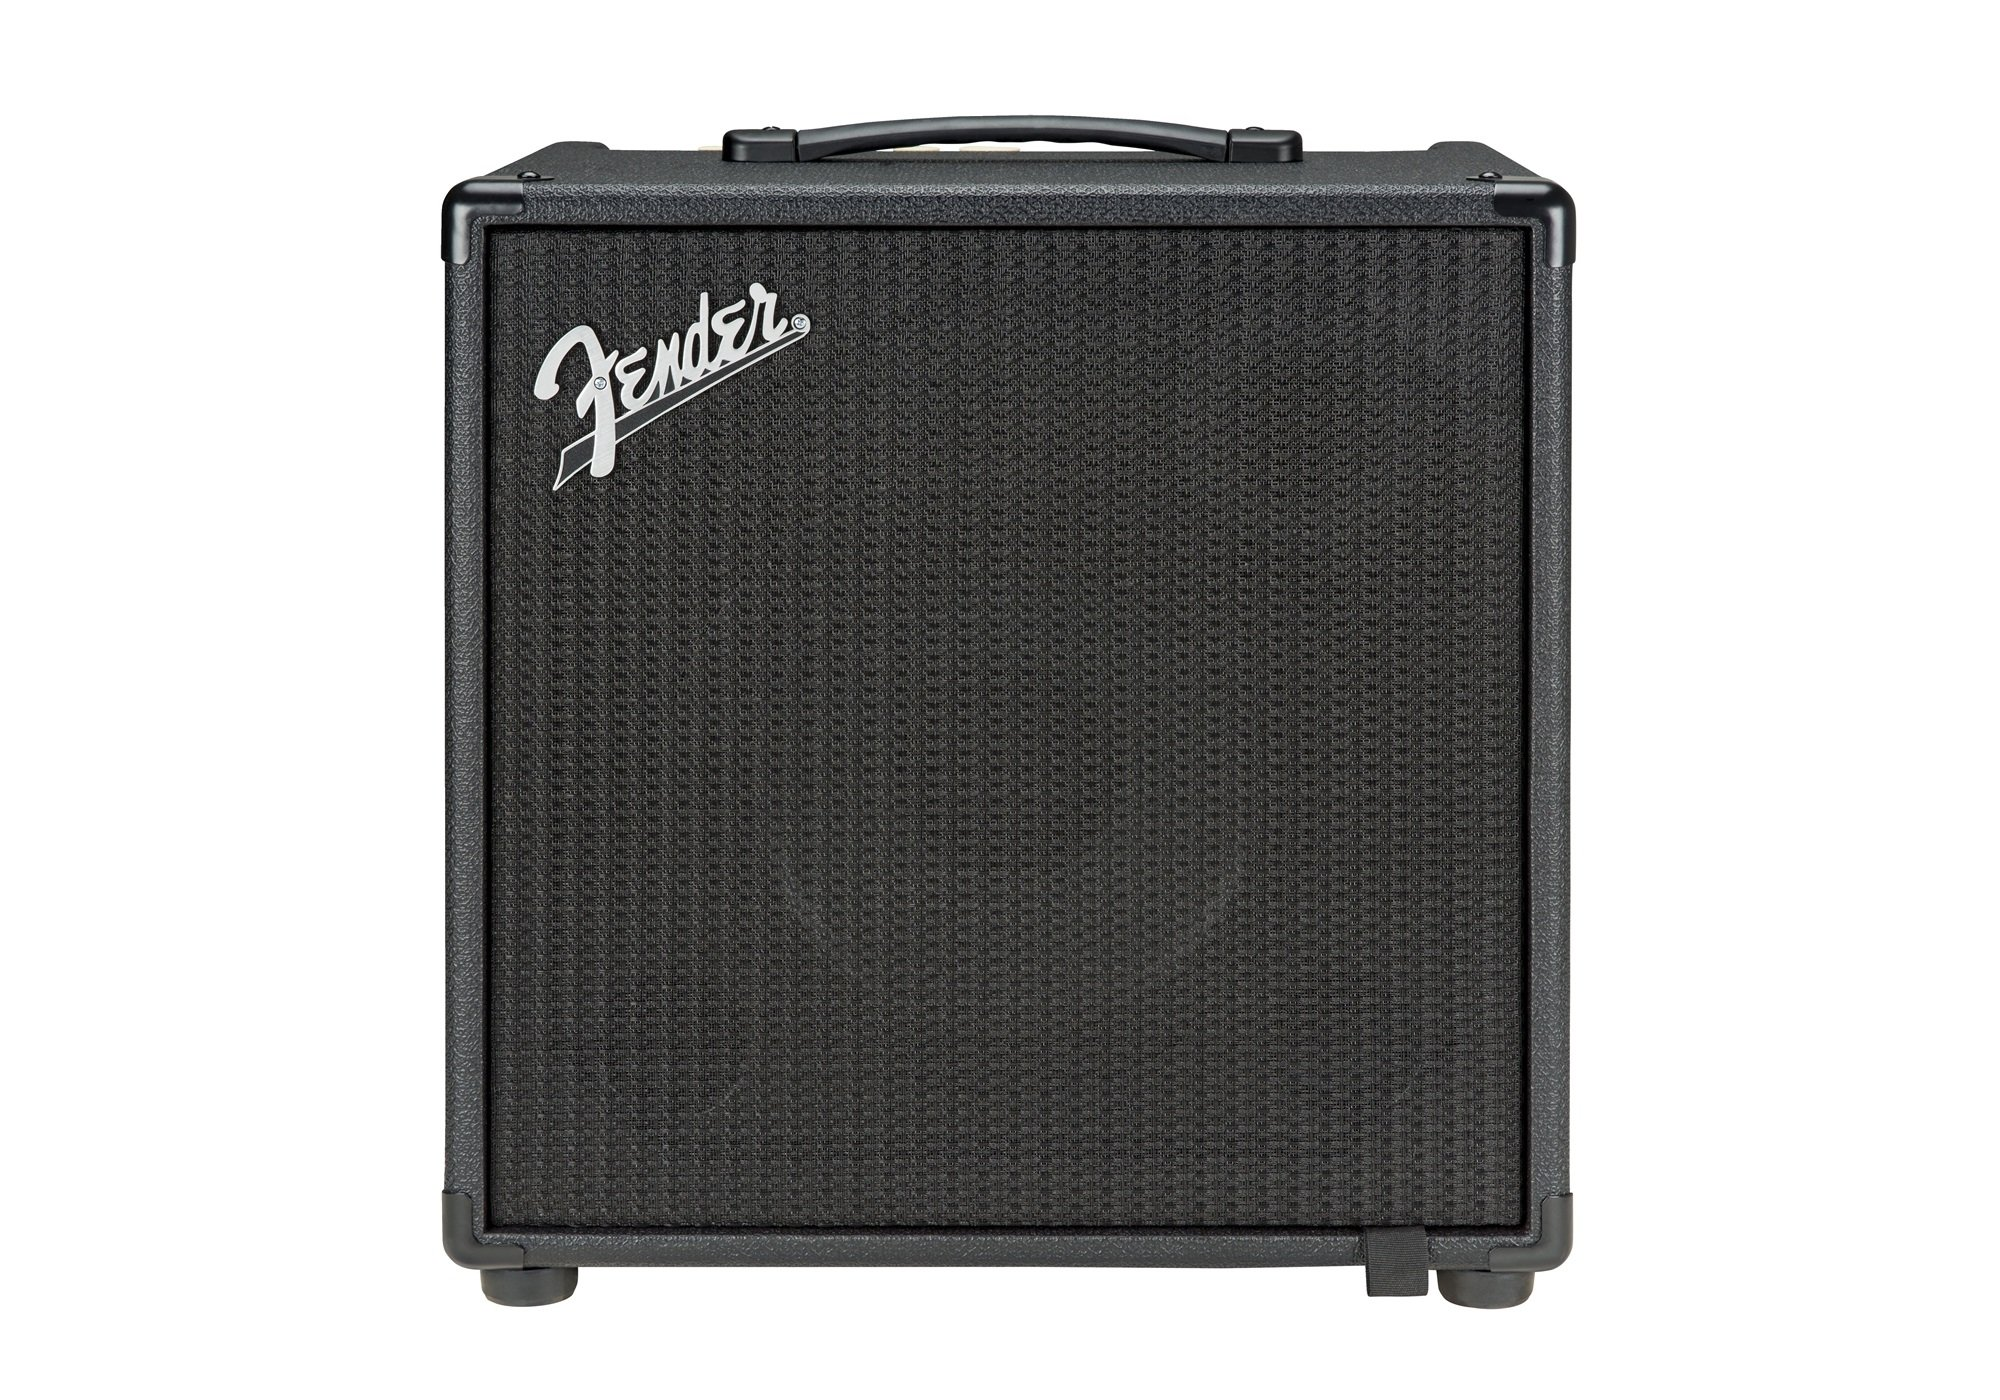 Fender Rumble Studio 40 Bass Amplifier